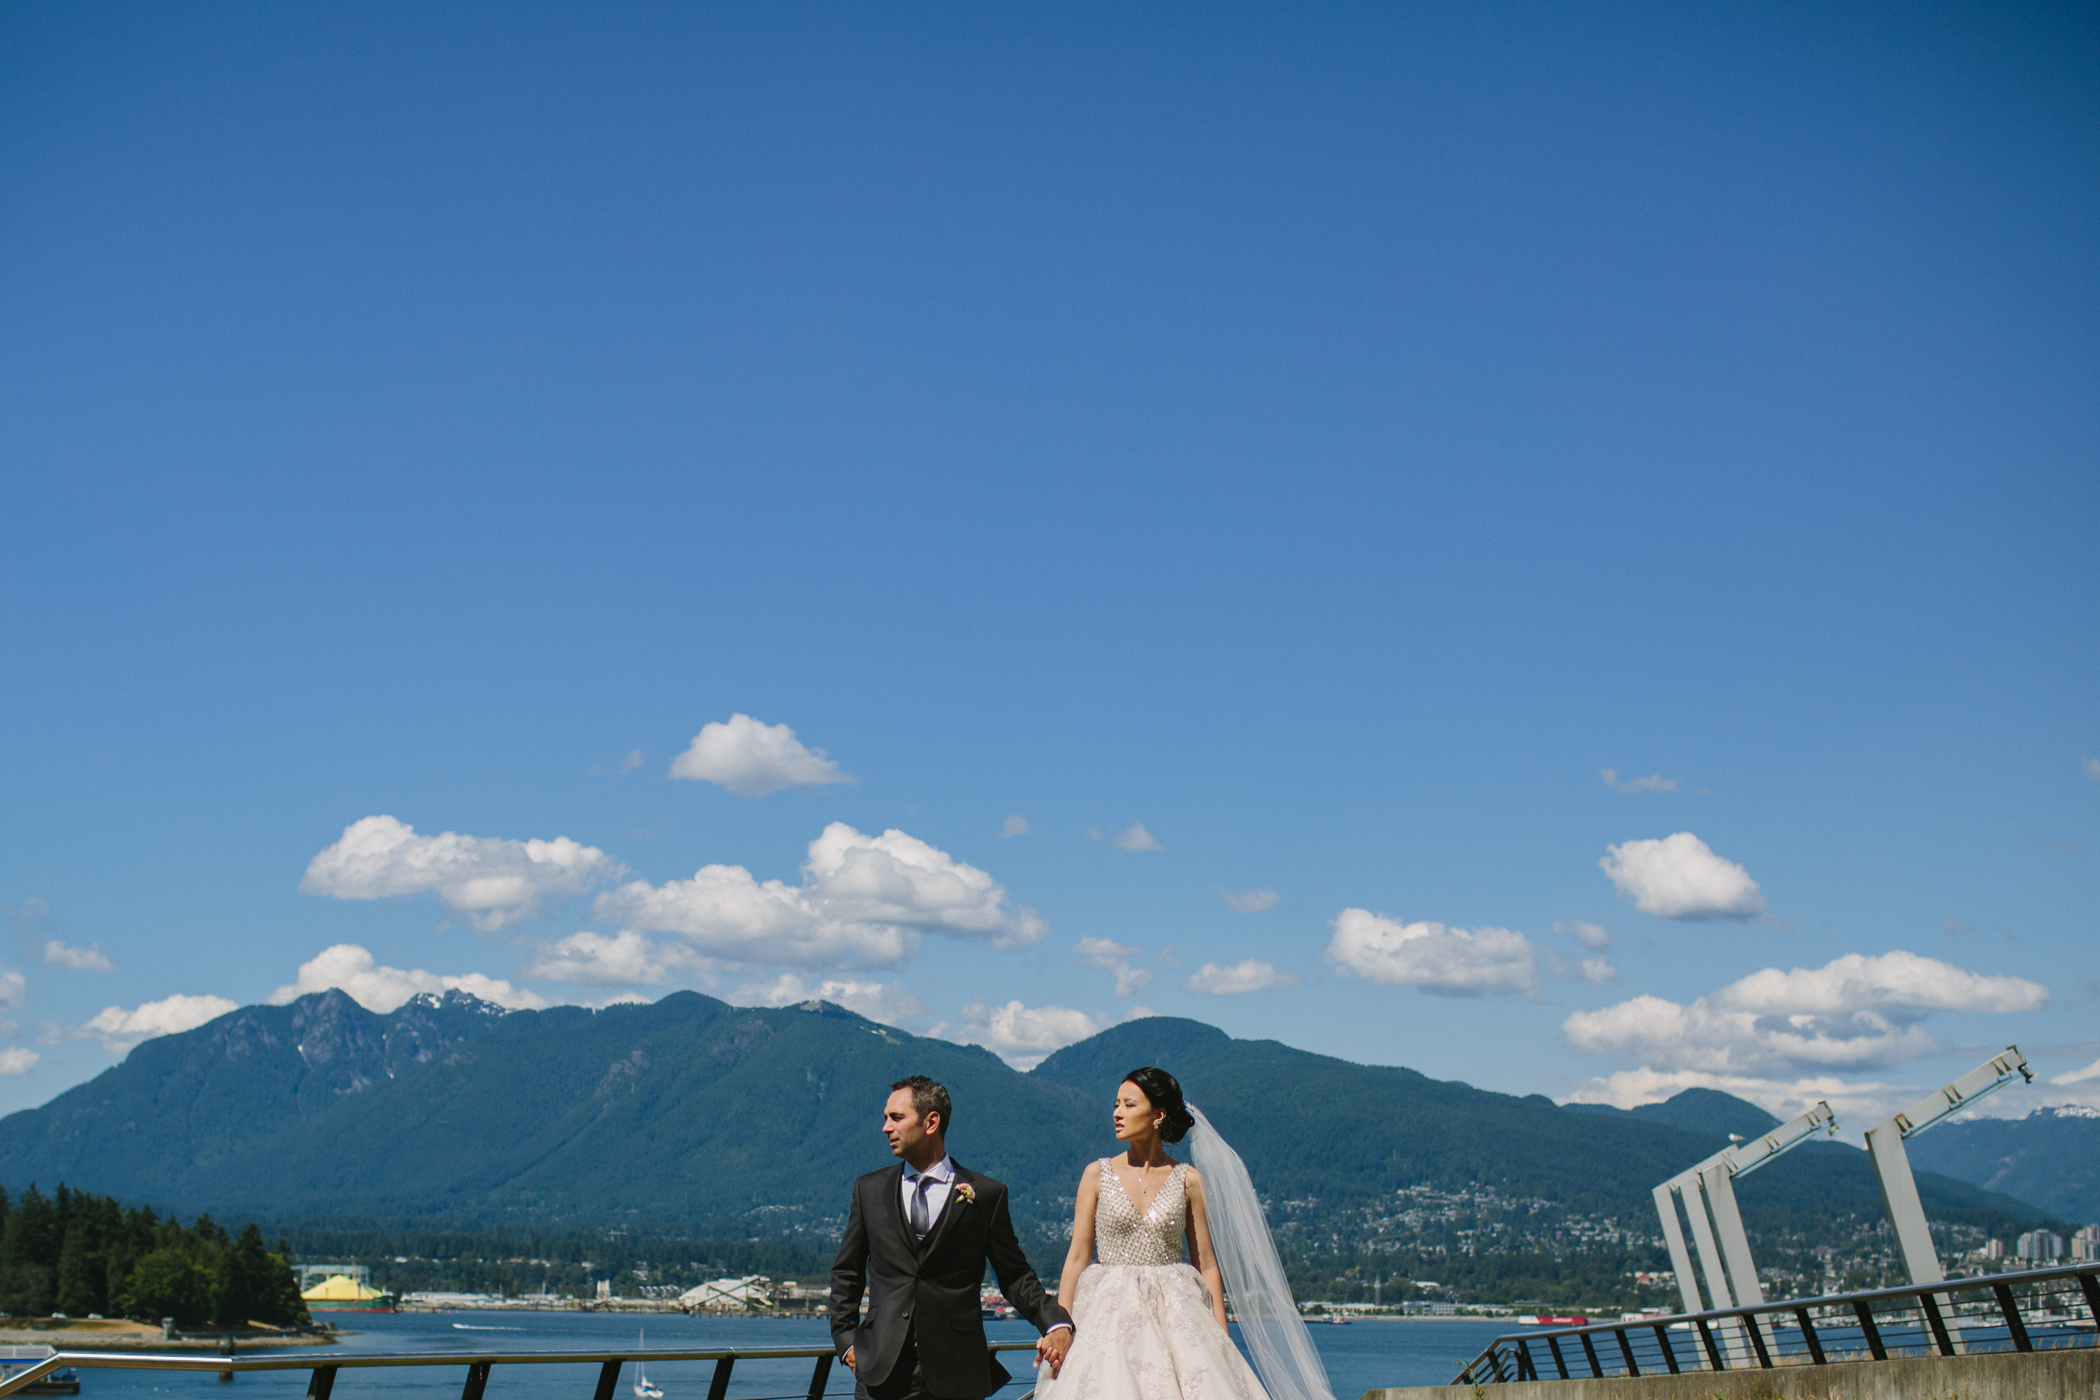 Vancouver Coast Mountains with Bride and Groom